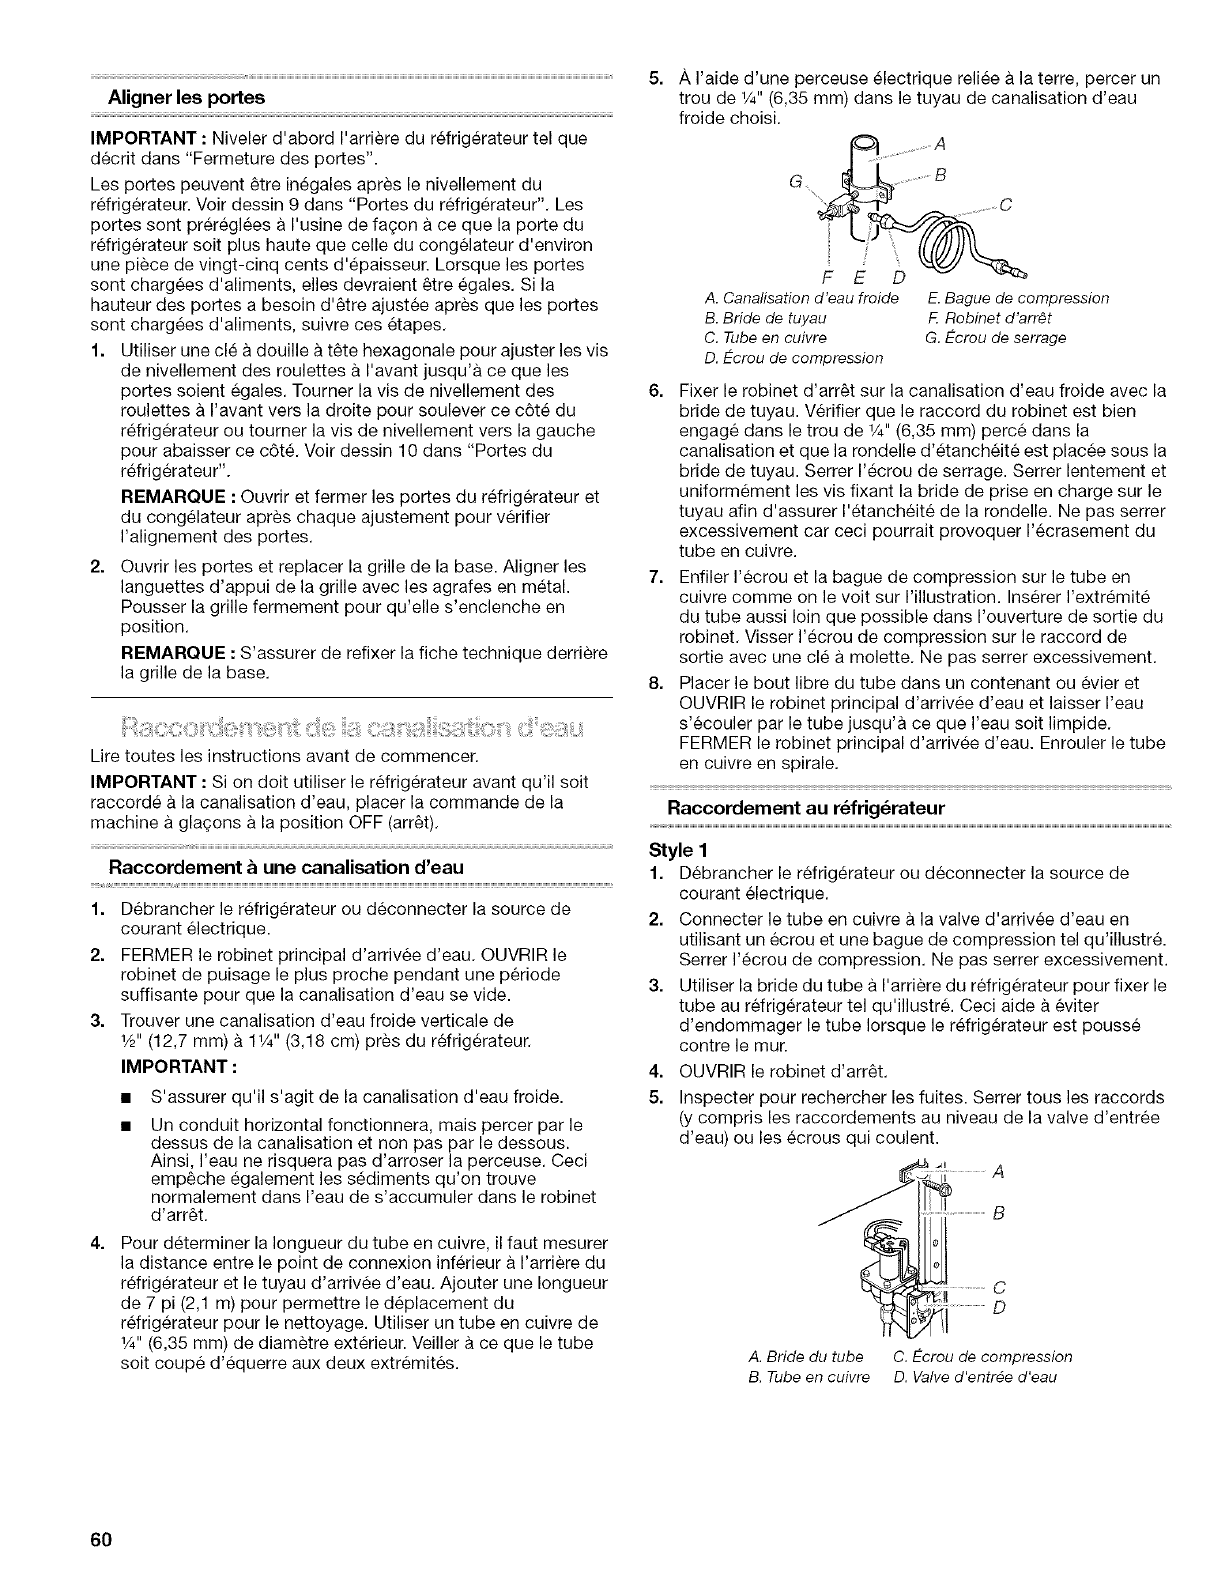 Page 60 of Kenmore Refrigerator 10656834601 User Guide